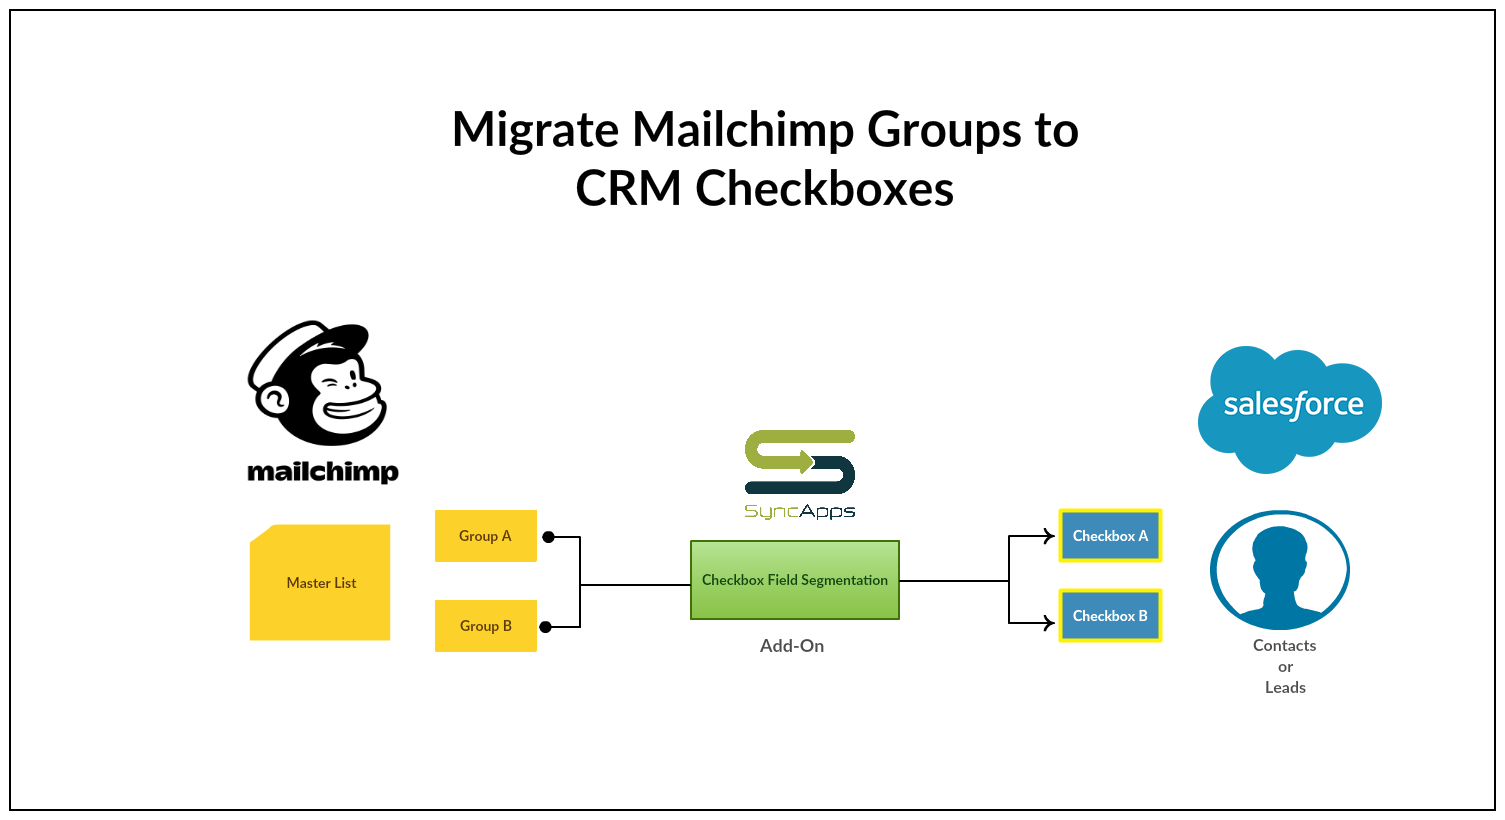 Migrate_Mailchimp_Groups_to_CRM_Checkboxes__2_.png